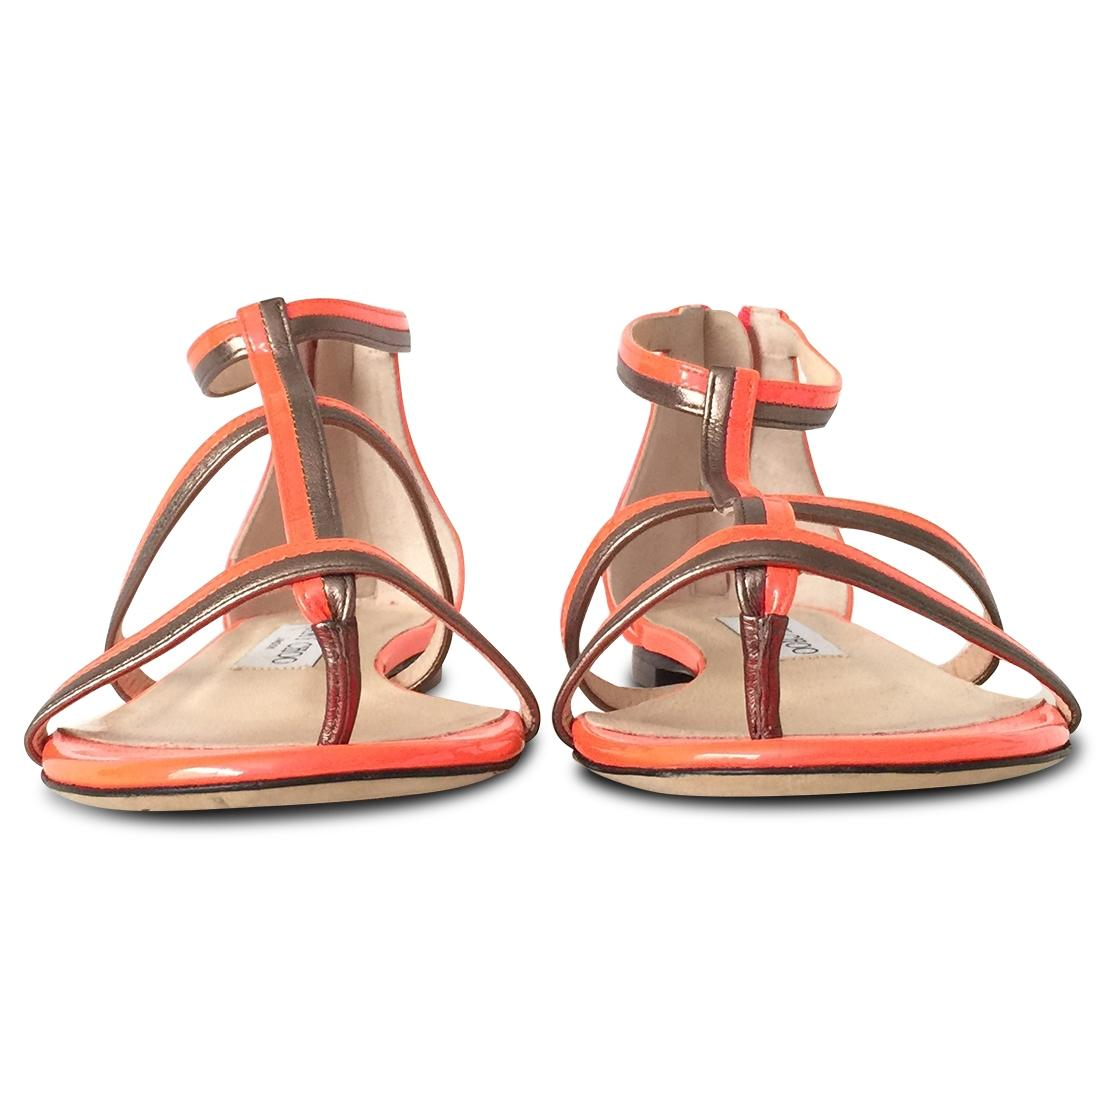 db4703d01c3 ... Jimmy Choo Orange New New New Tabitha T-strap Patent Leather Sandals  Size EU 37 ...